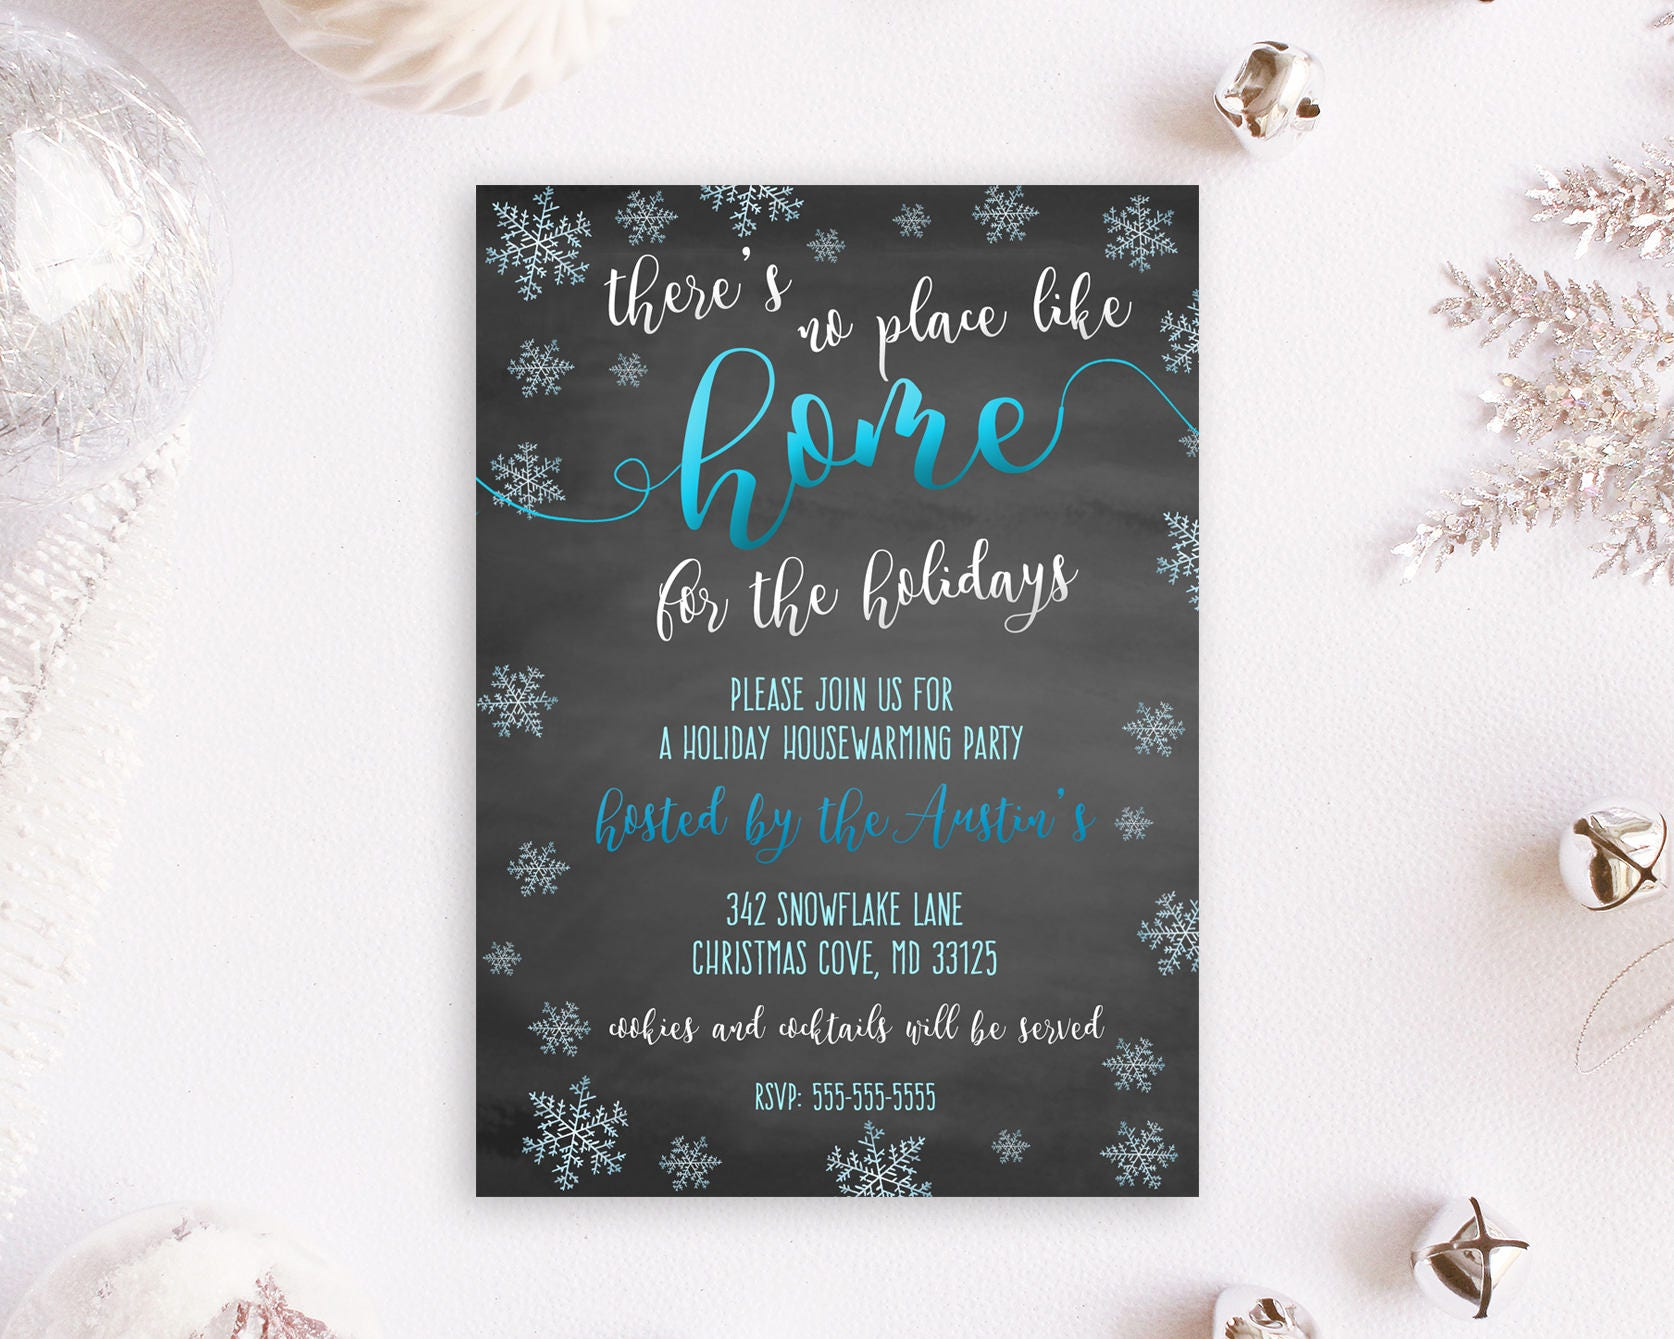 Housewarming Invites Holiday Housewarming Party Holiday